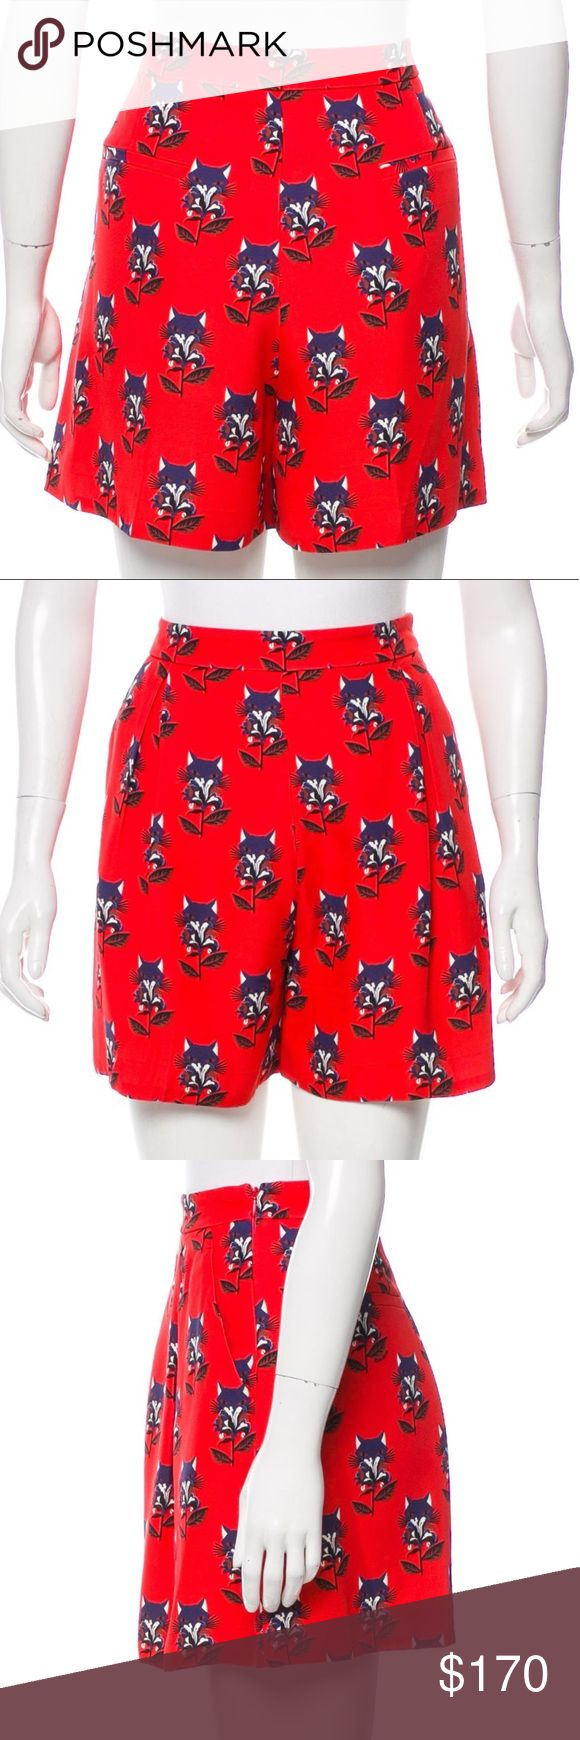 """Miu Miu Signature Cat Print Silk Shorts Red and blue Miu Miu mini shorts with signature cat/floral  print throughout, dual slit pockets at front and concealed zip closure at side. Fully lined. Adorable shorts! Unfortunately they no longer fit. Pristine like new condition.   Measurements: Inseam: 3.5"""" Waist: 29"""" Leg Opening: 31"""" Rise: 14"""" Hip: 38"""" Miu Miu Shorts"""